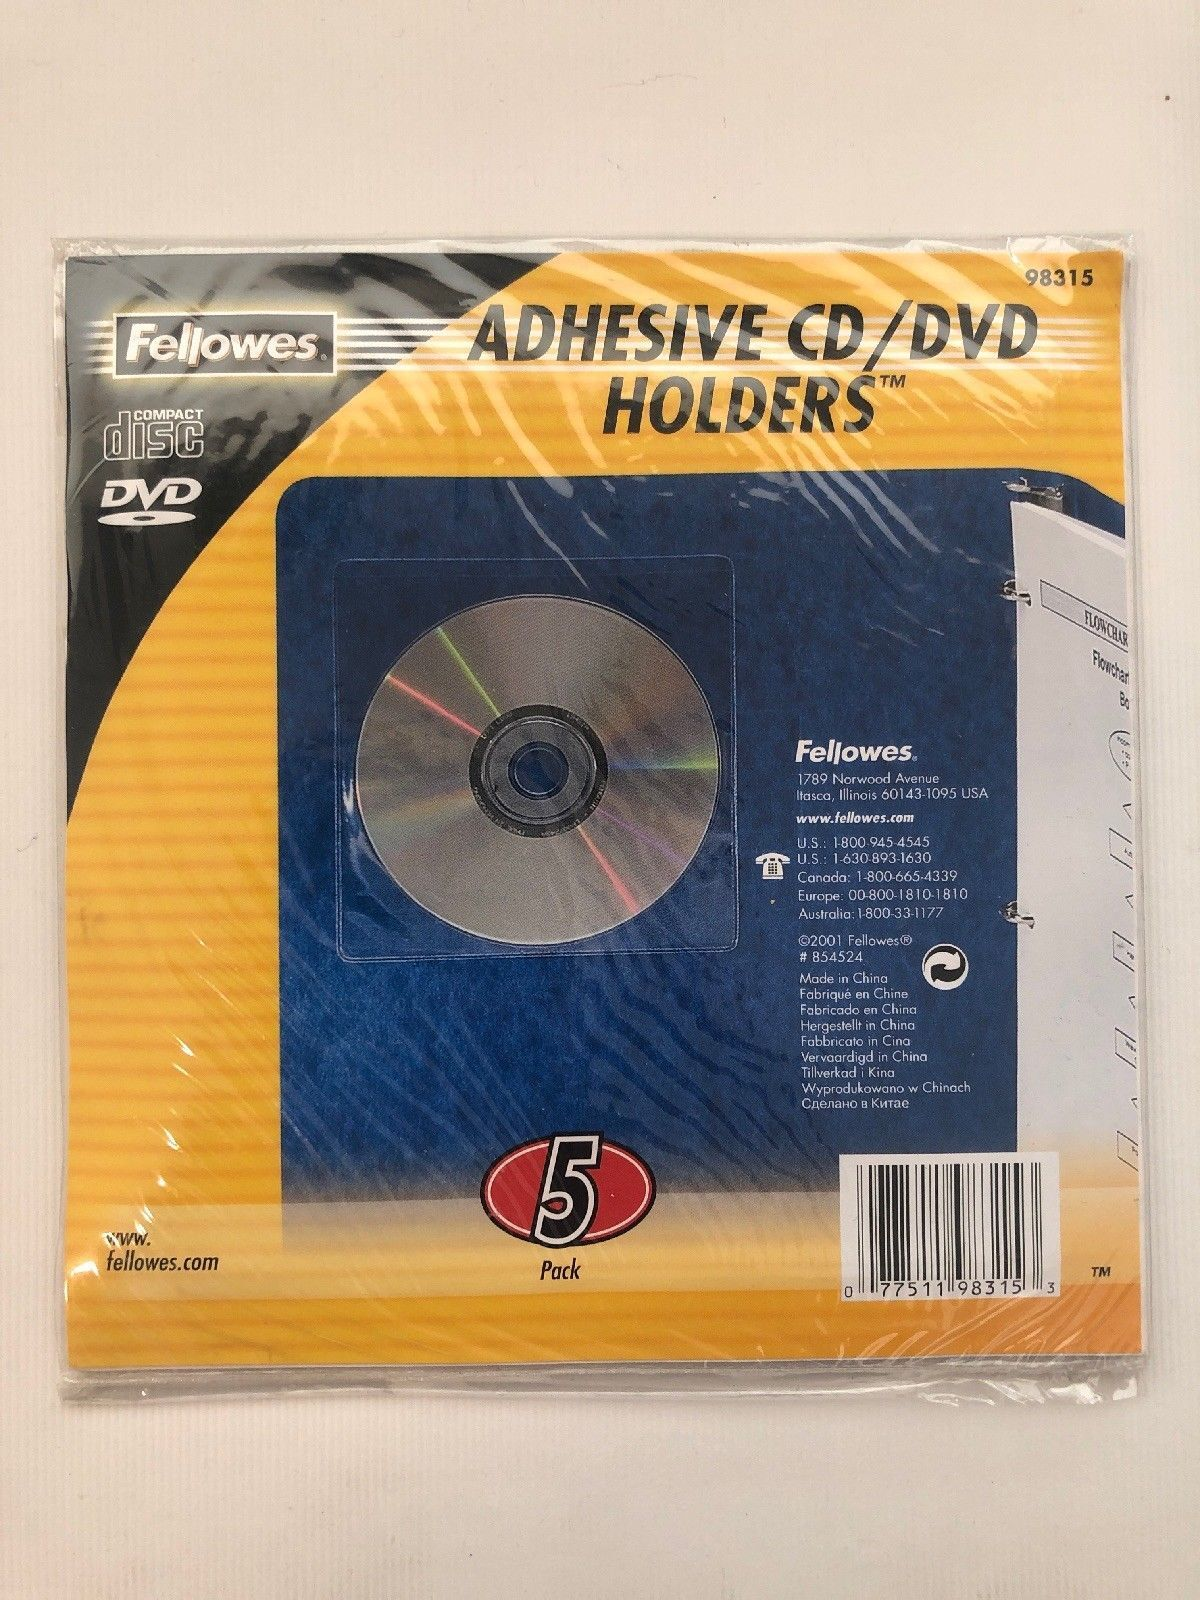 Fellowes 98315 5-Pack Adhesive CD/DVD Holders